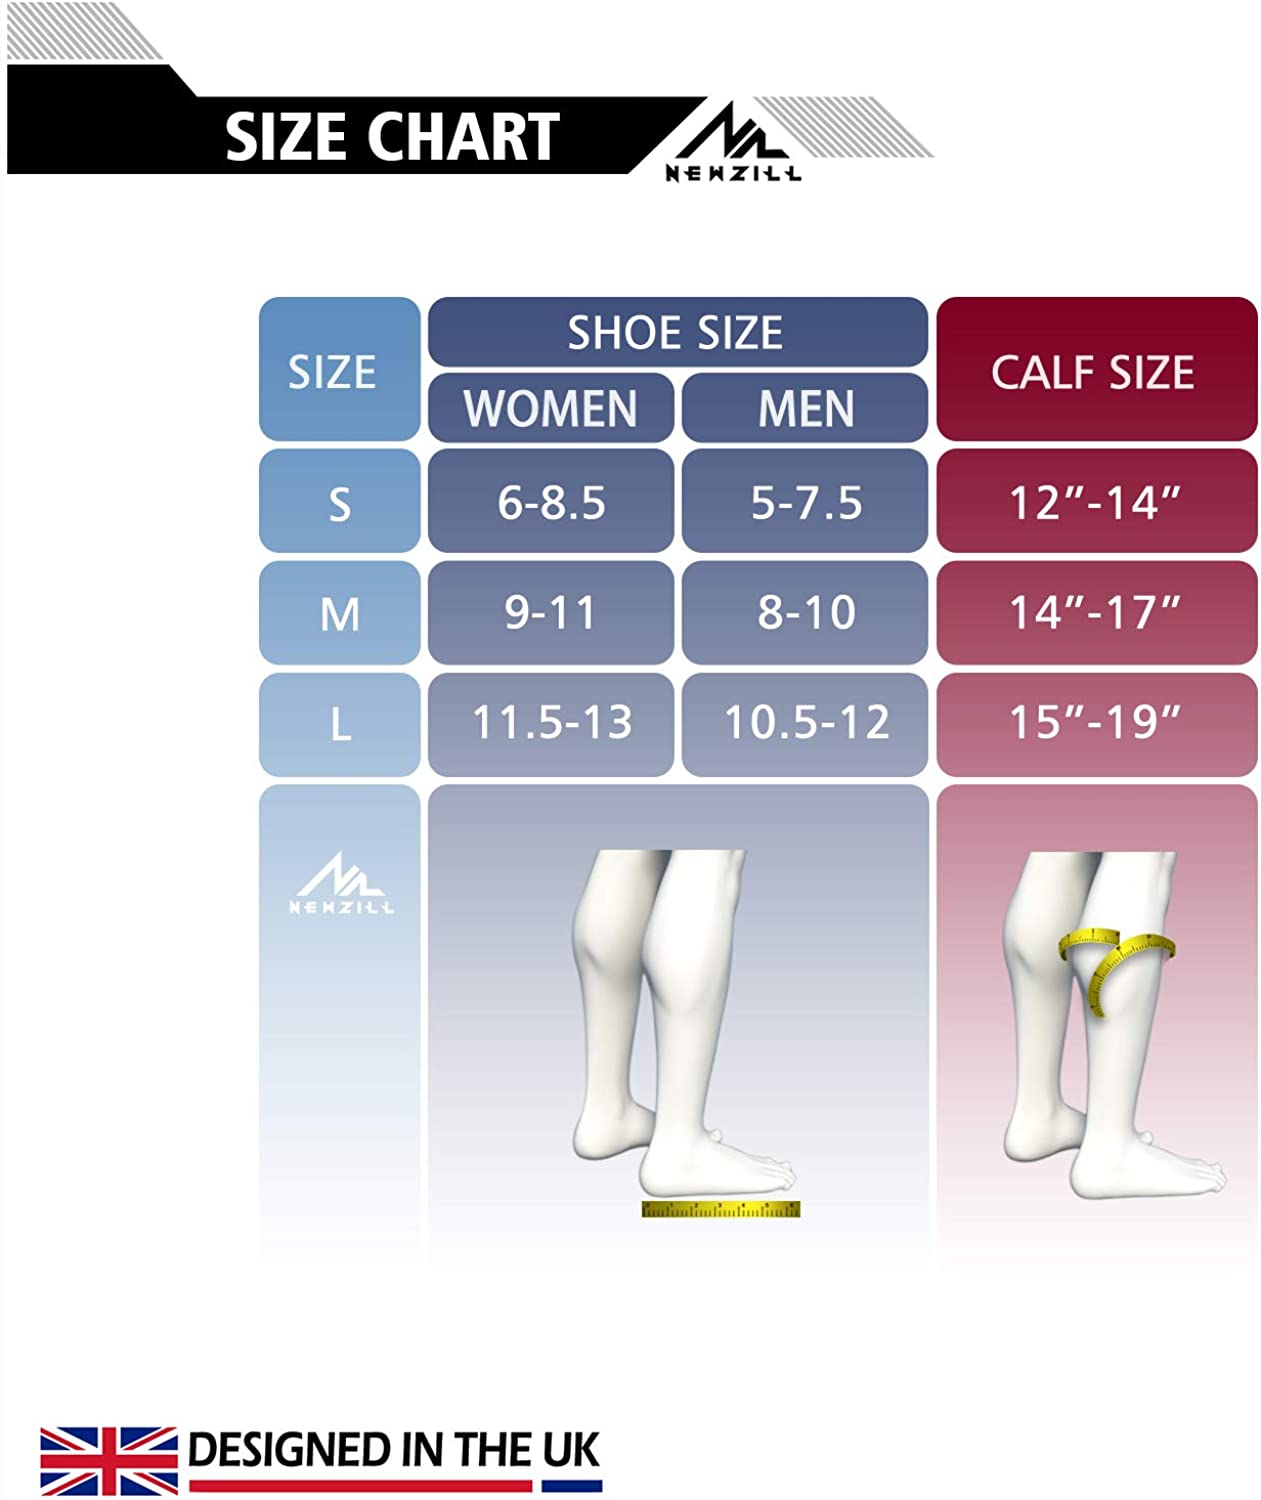 NEWZILL Compression Socks U.S Olympic Fencer Recommend for Men & Women 20-30mmHg: Clothing